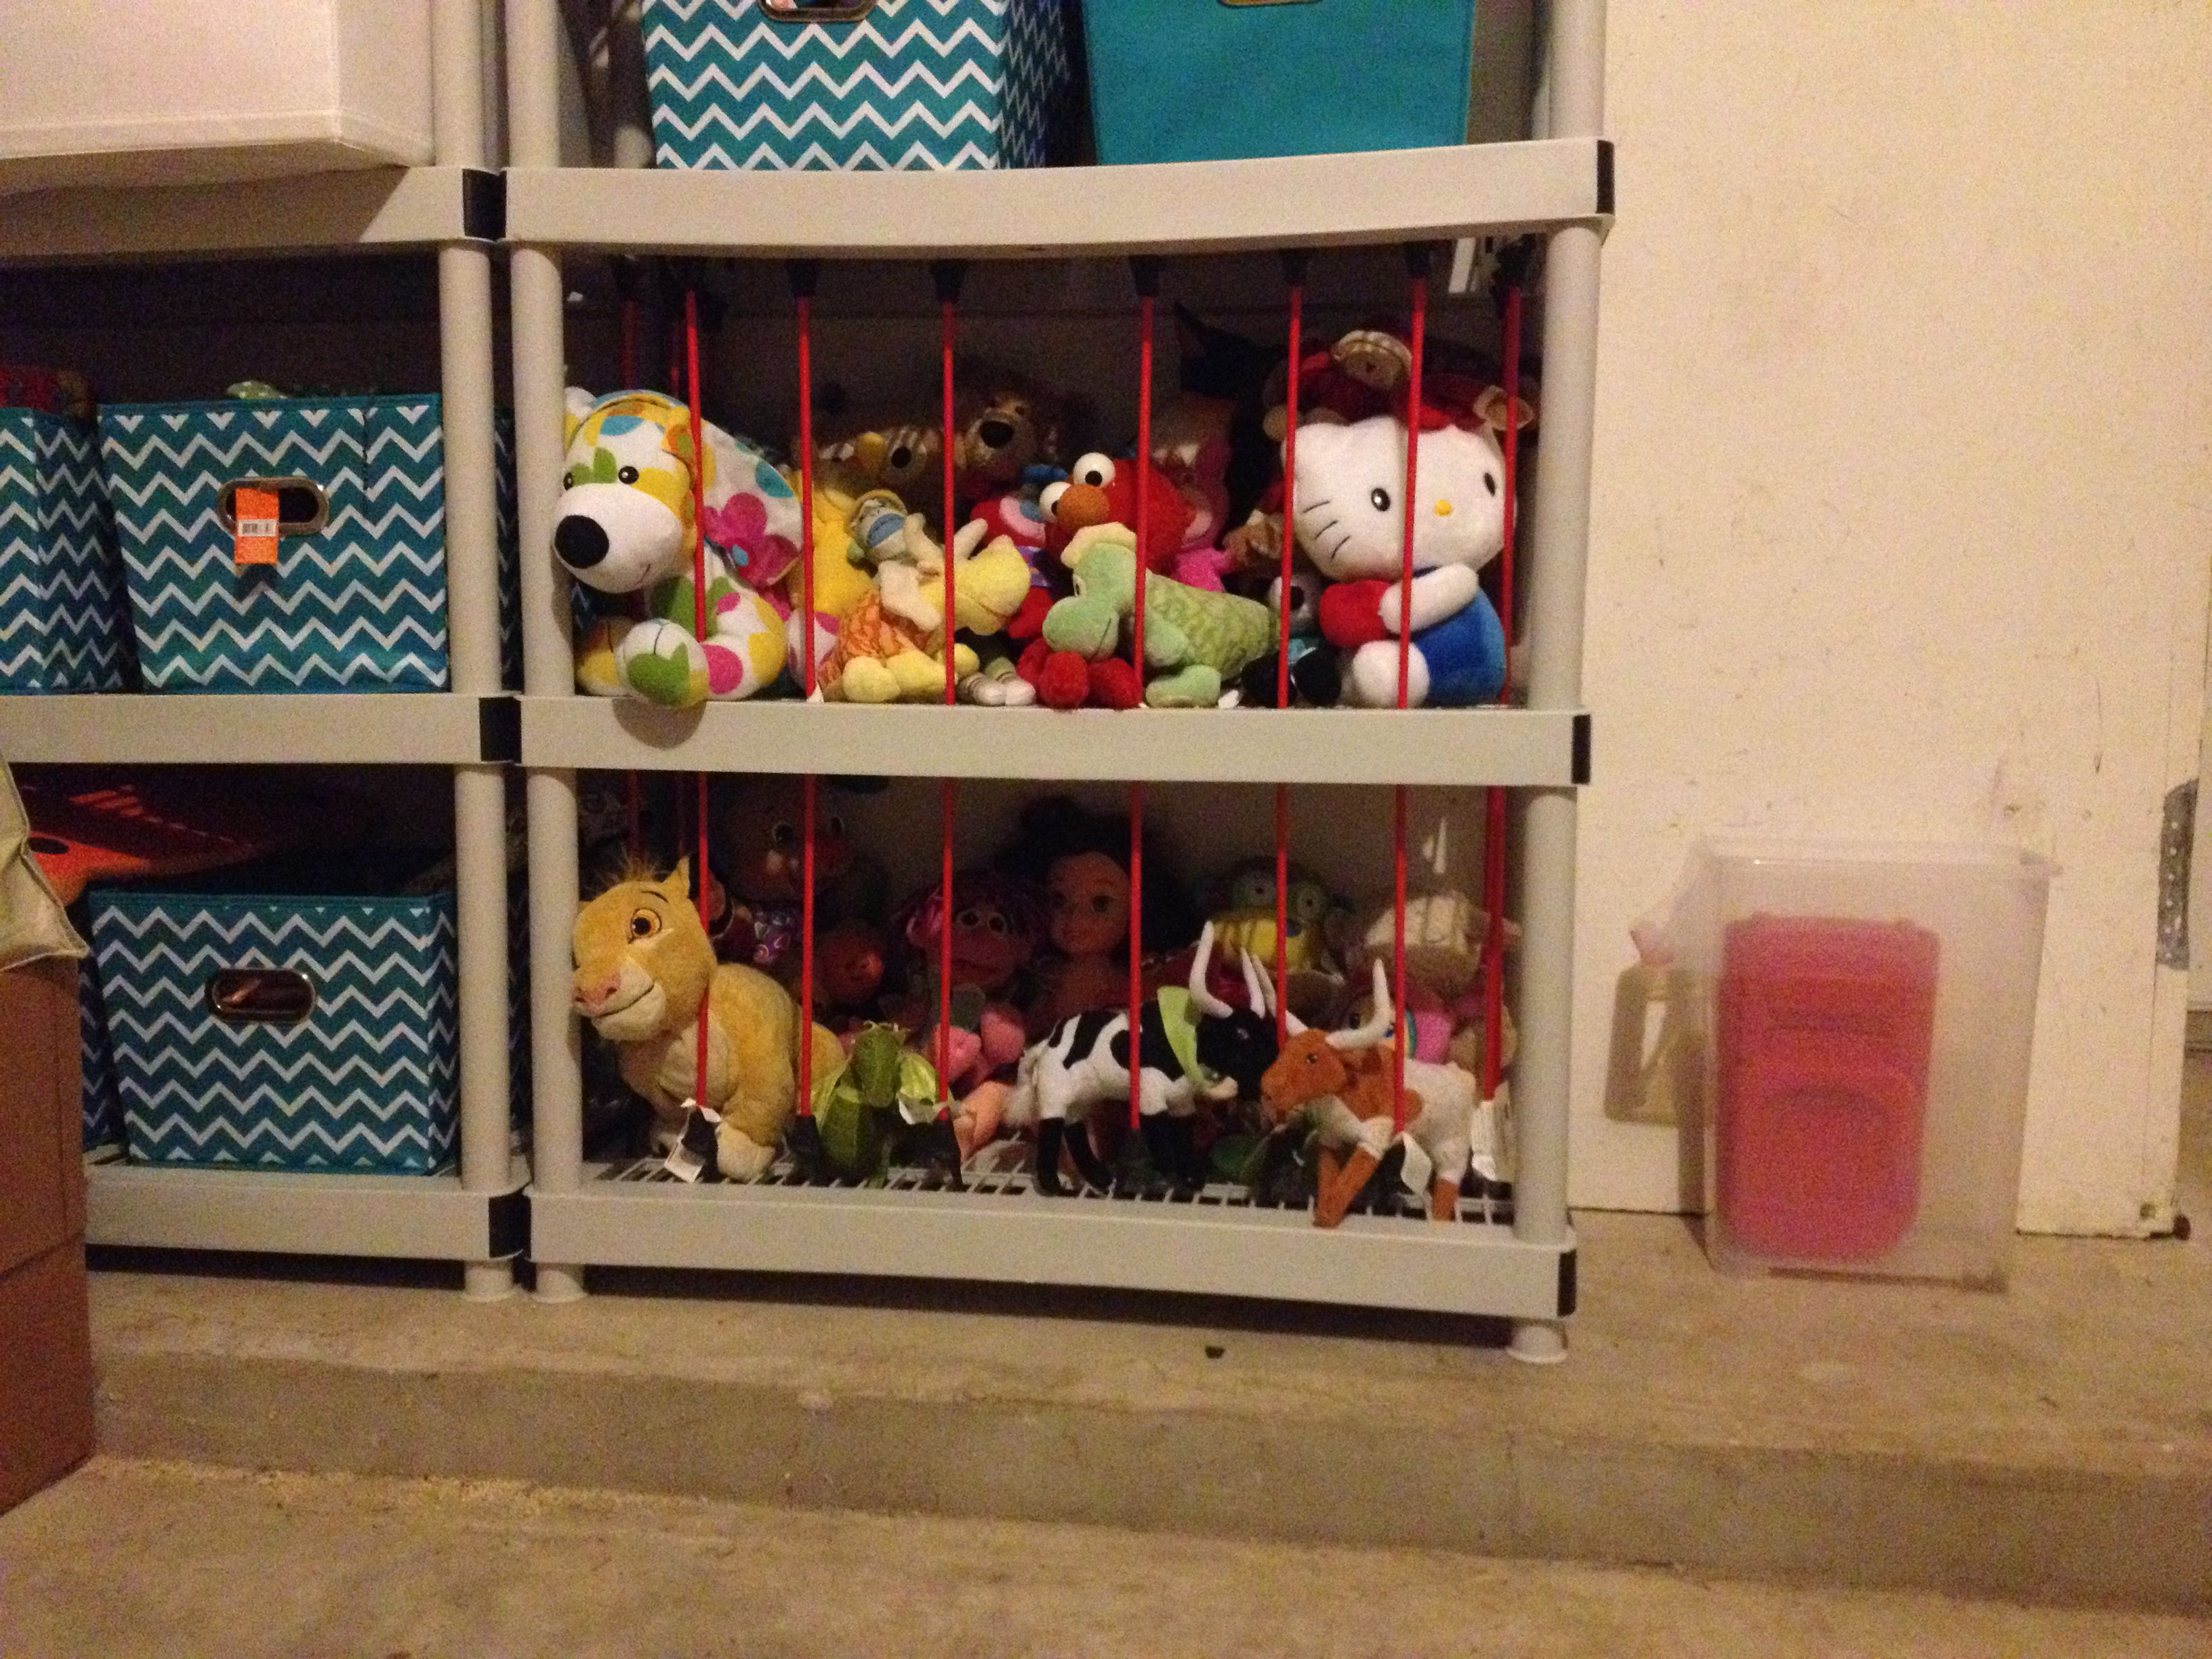 """A SIMPLE STUFFED ANIMAL """"ZOO"""": Wanted an out-of-the-way place to store the girls' stuffed animals but also allow them access. So I just took two of the lower shelves in our garage shelving and added 24"""" bungee cords to fronts and sides. Each cord stretches from bottom shelf through the middle shelf to the top."""